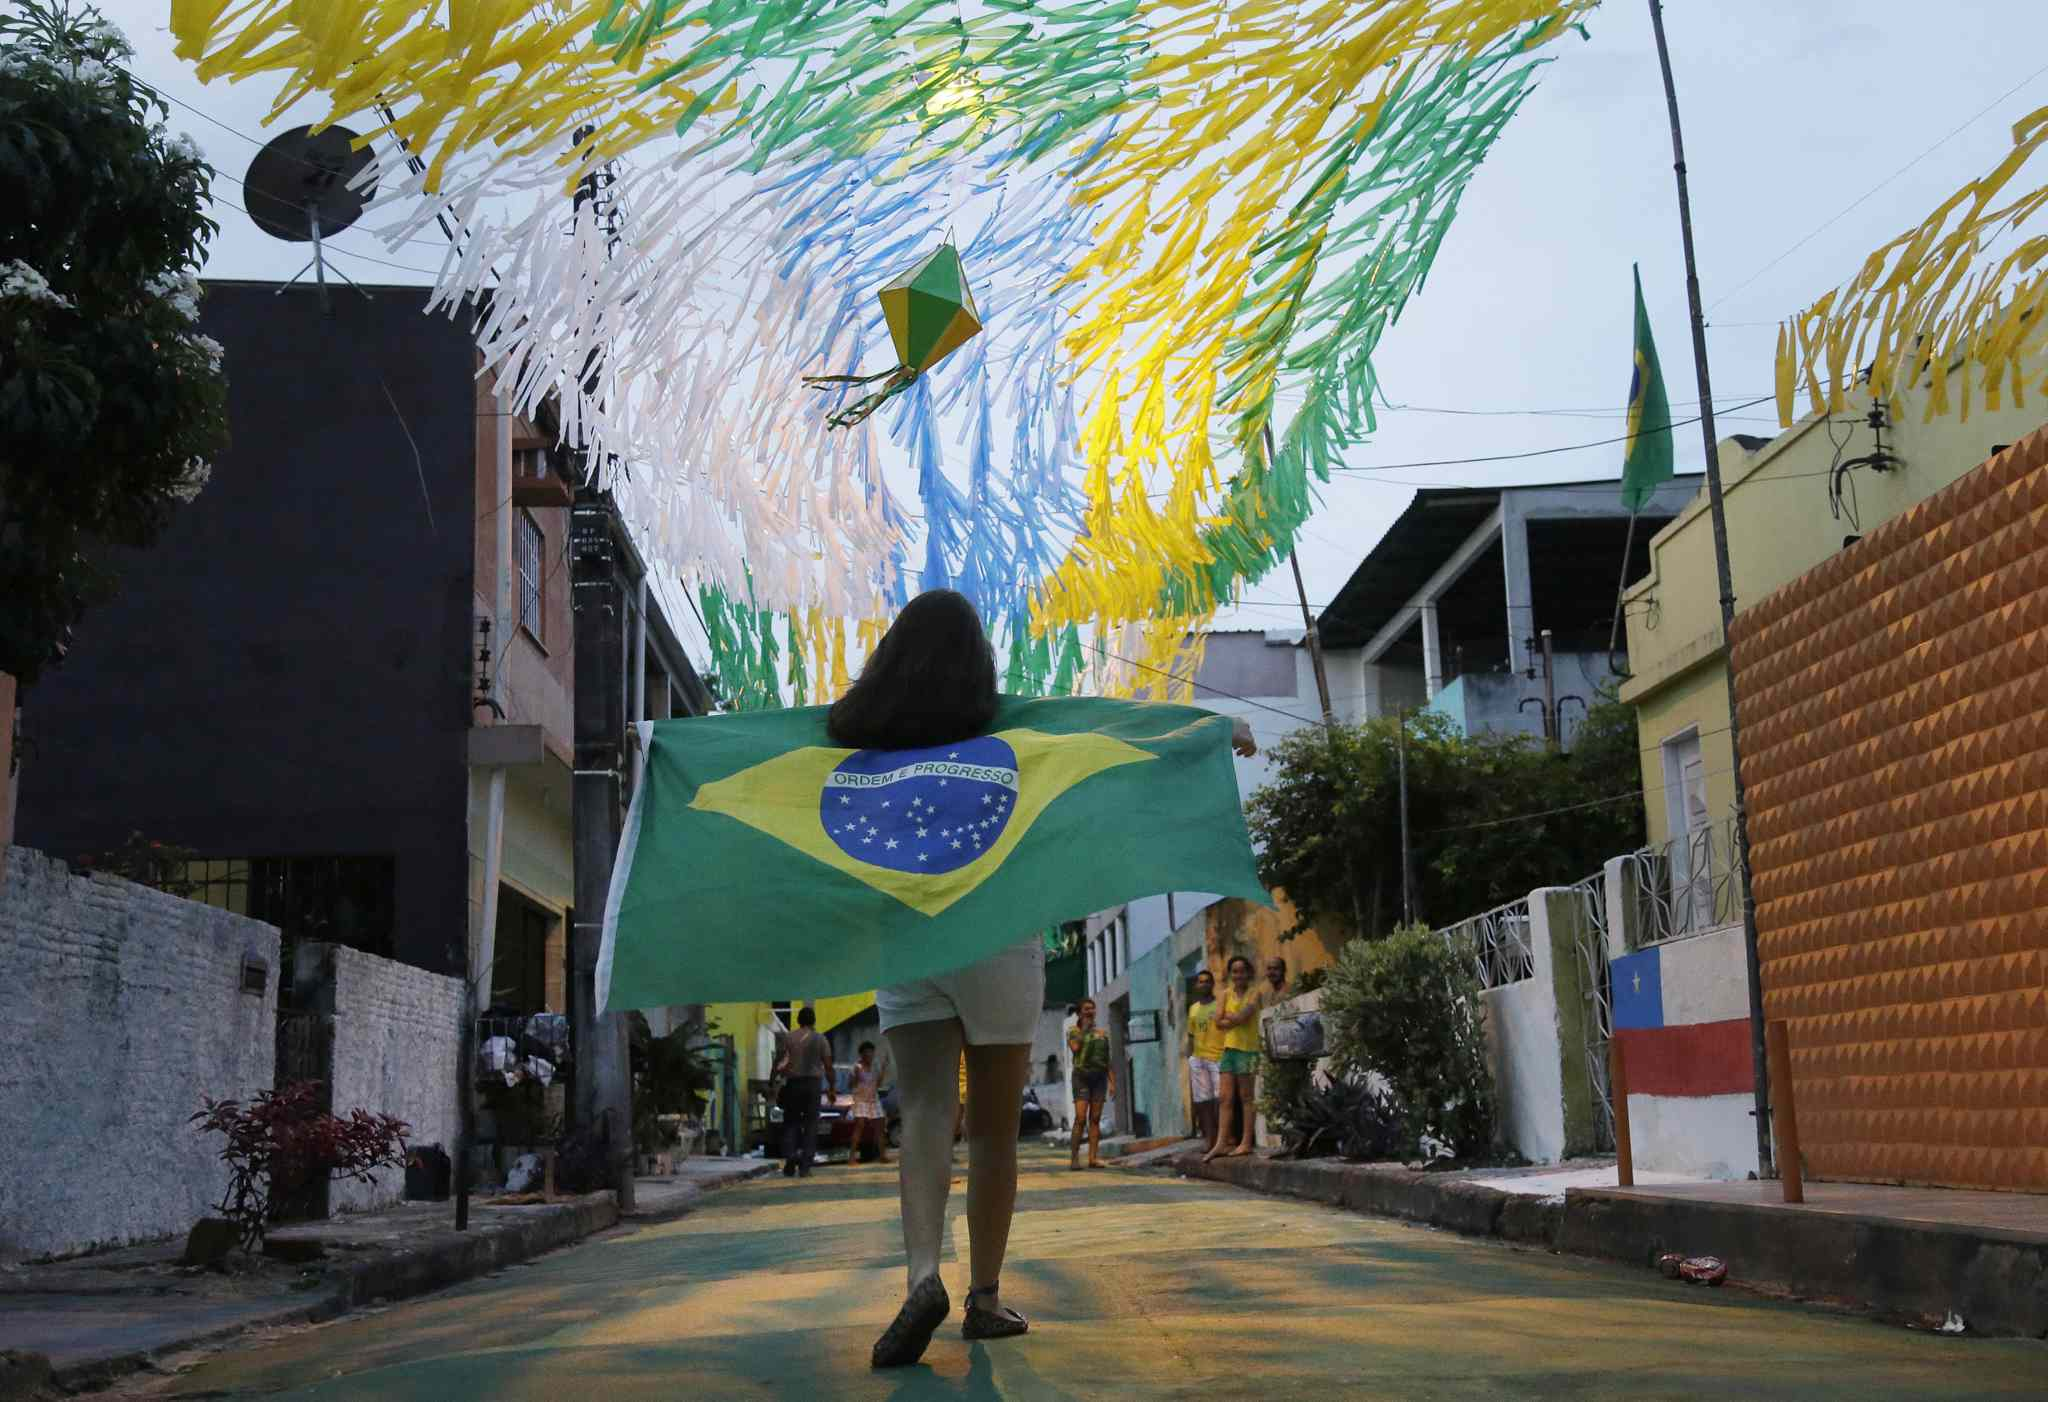 A girl walks down an alleyway holding a Brazilian flag after the country's winning opening match over Croatia during the 2014 soccer World Cup in Manaus, Brazil.